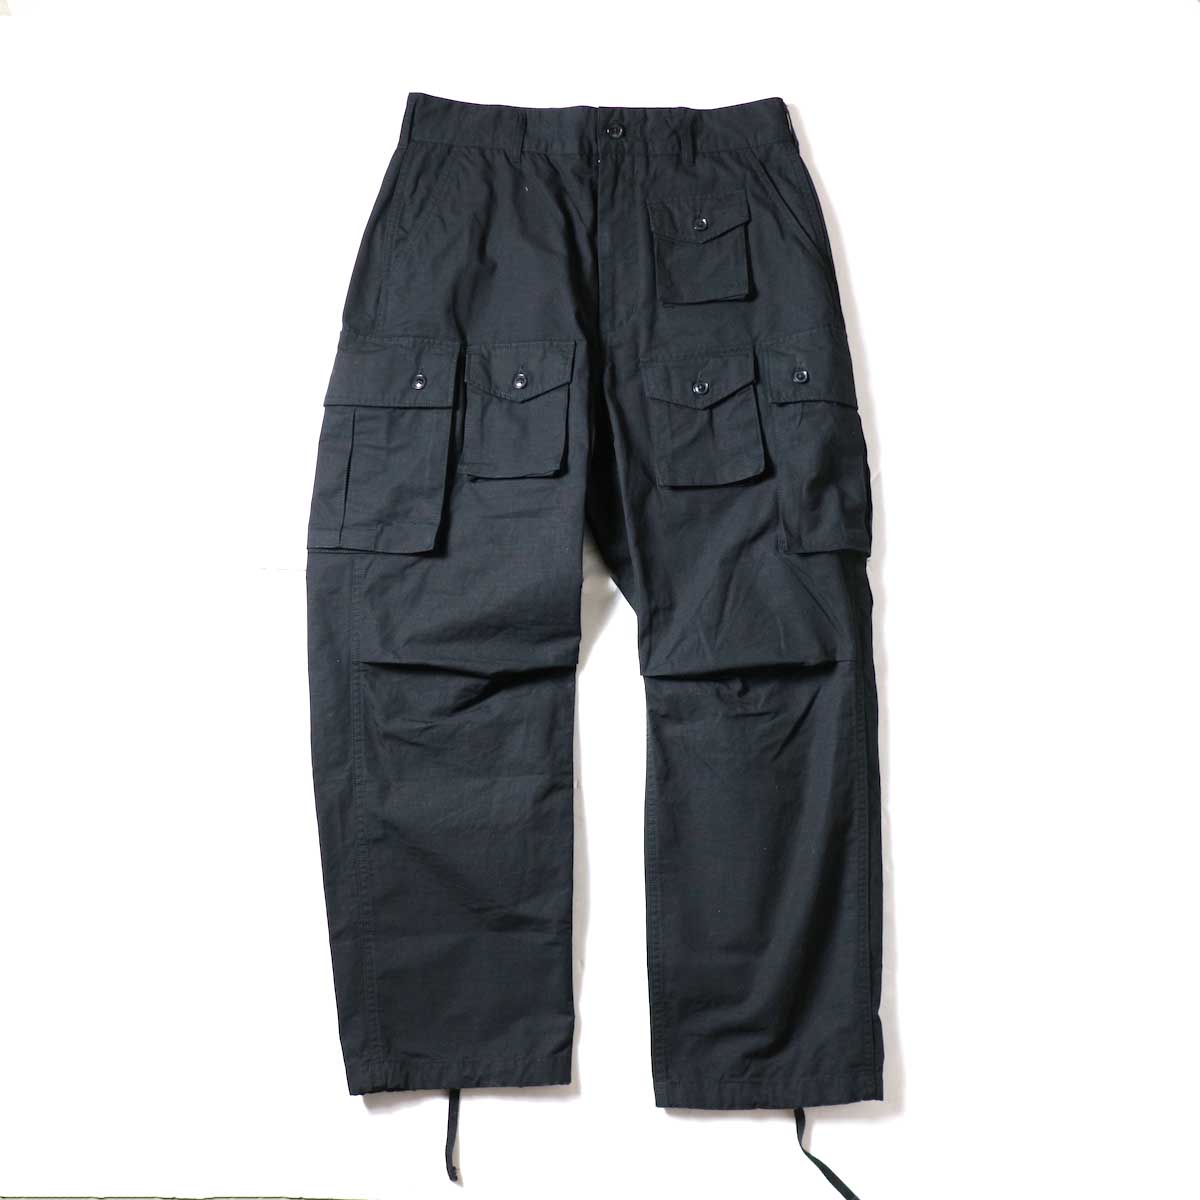 ENGINEERED GARMENTS / FA Pant - Cotton Ripstop (Black)正面